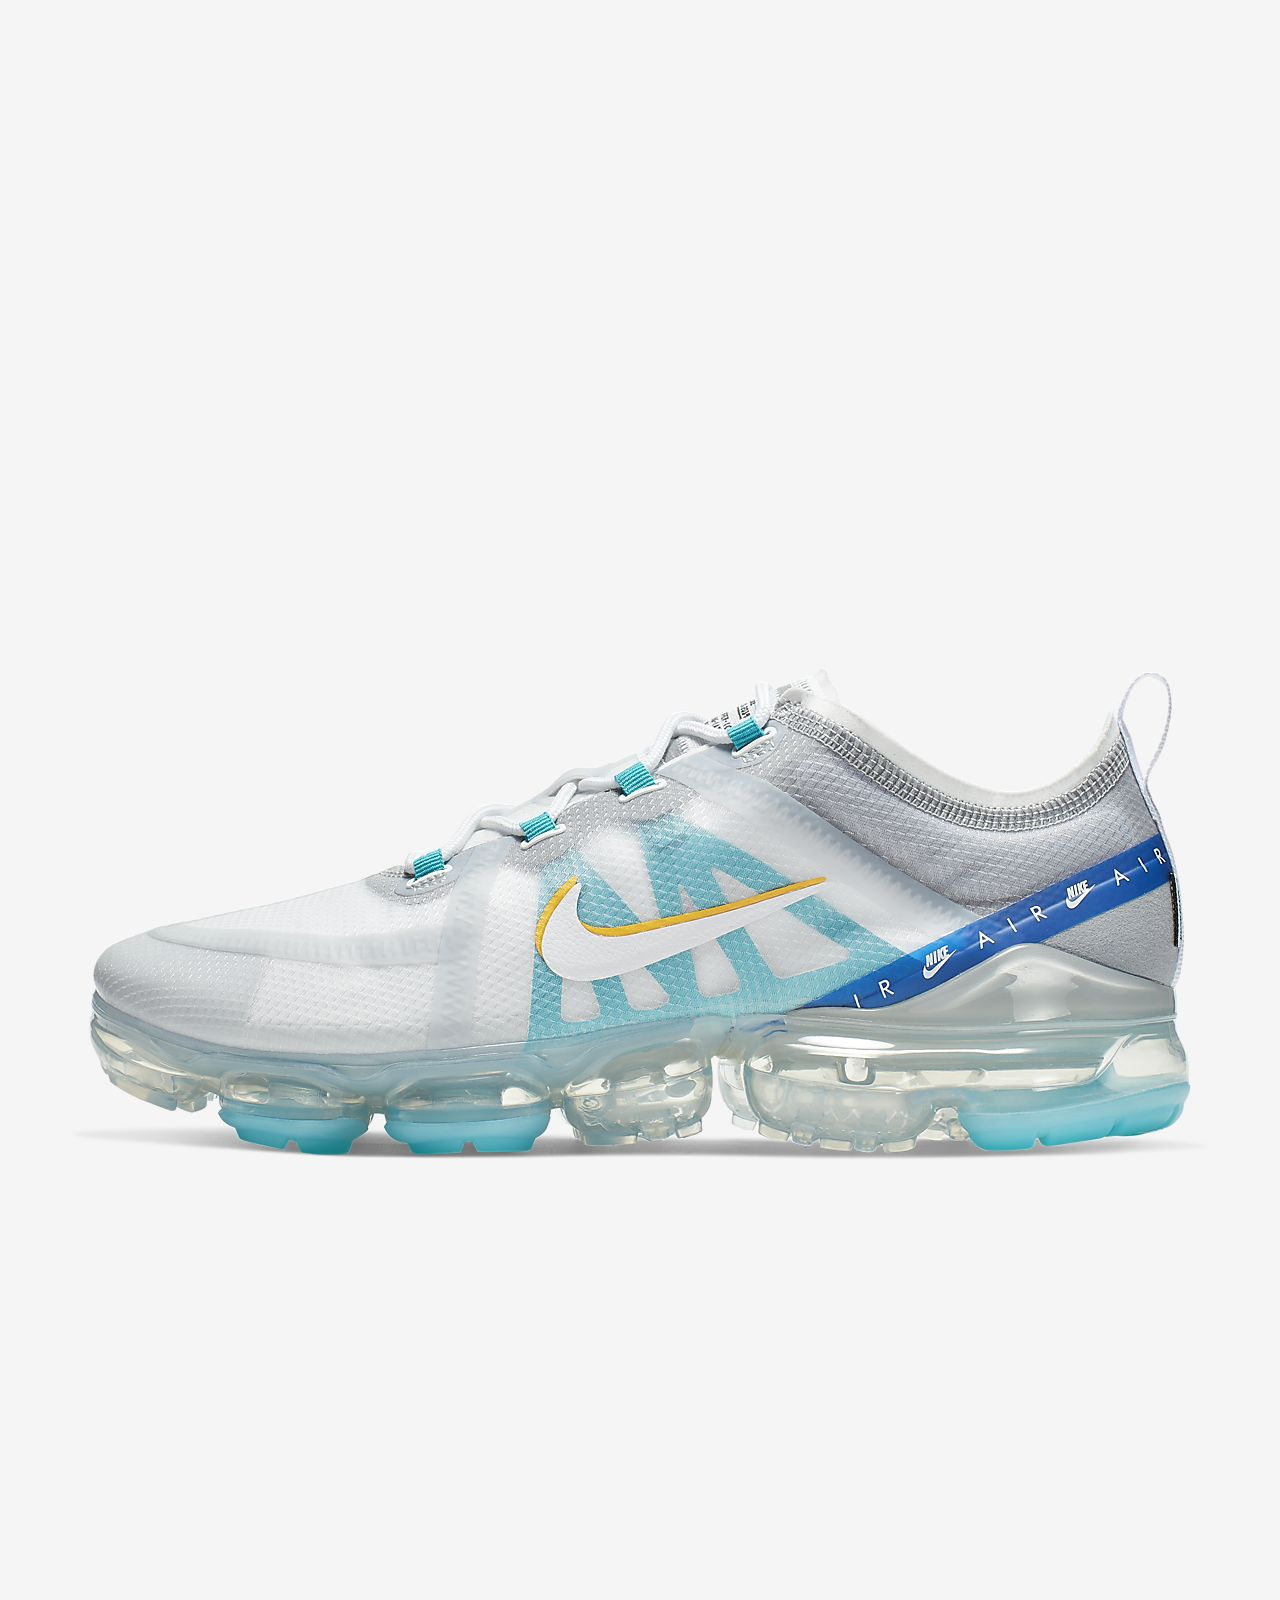 Nike Air VaporMax SE Men's Shoe